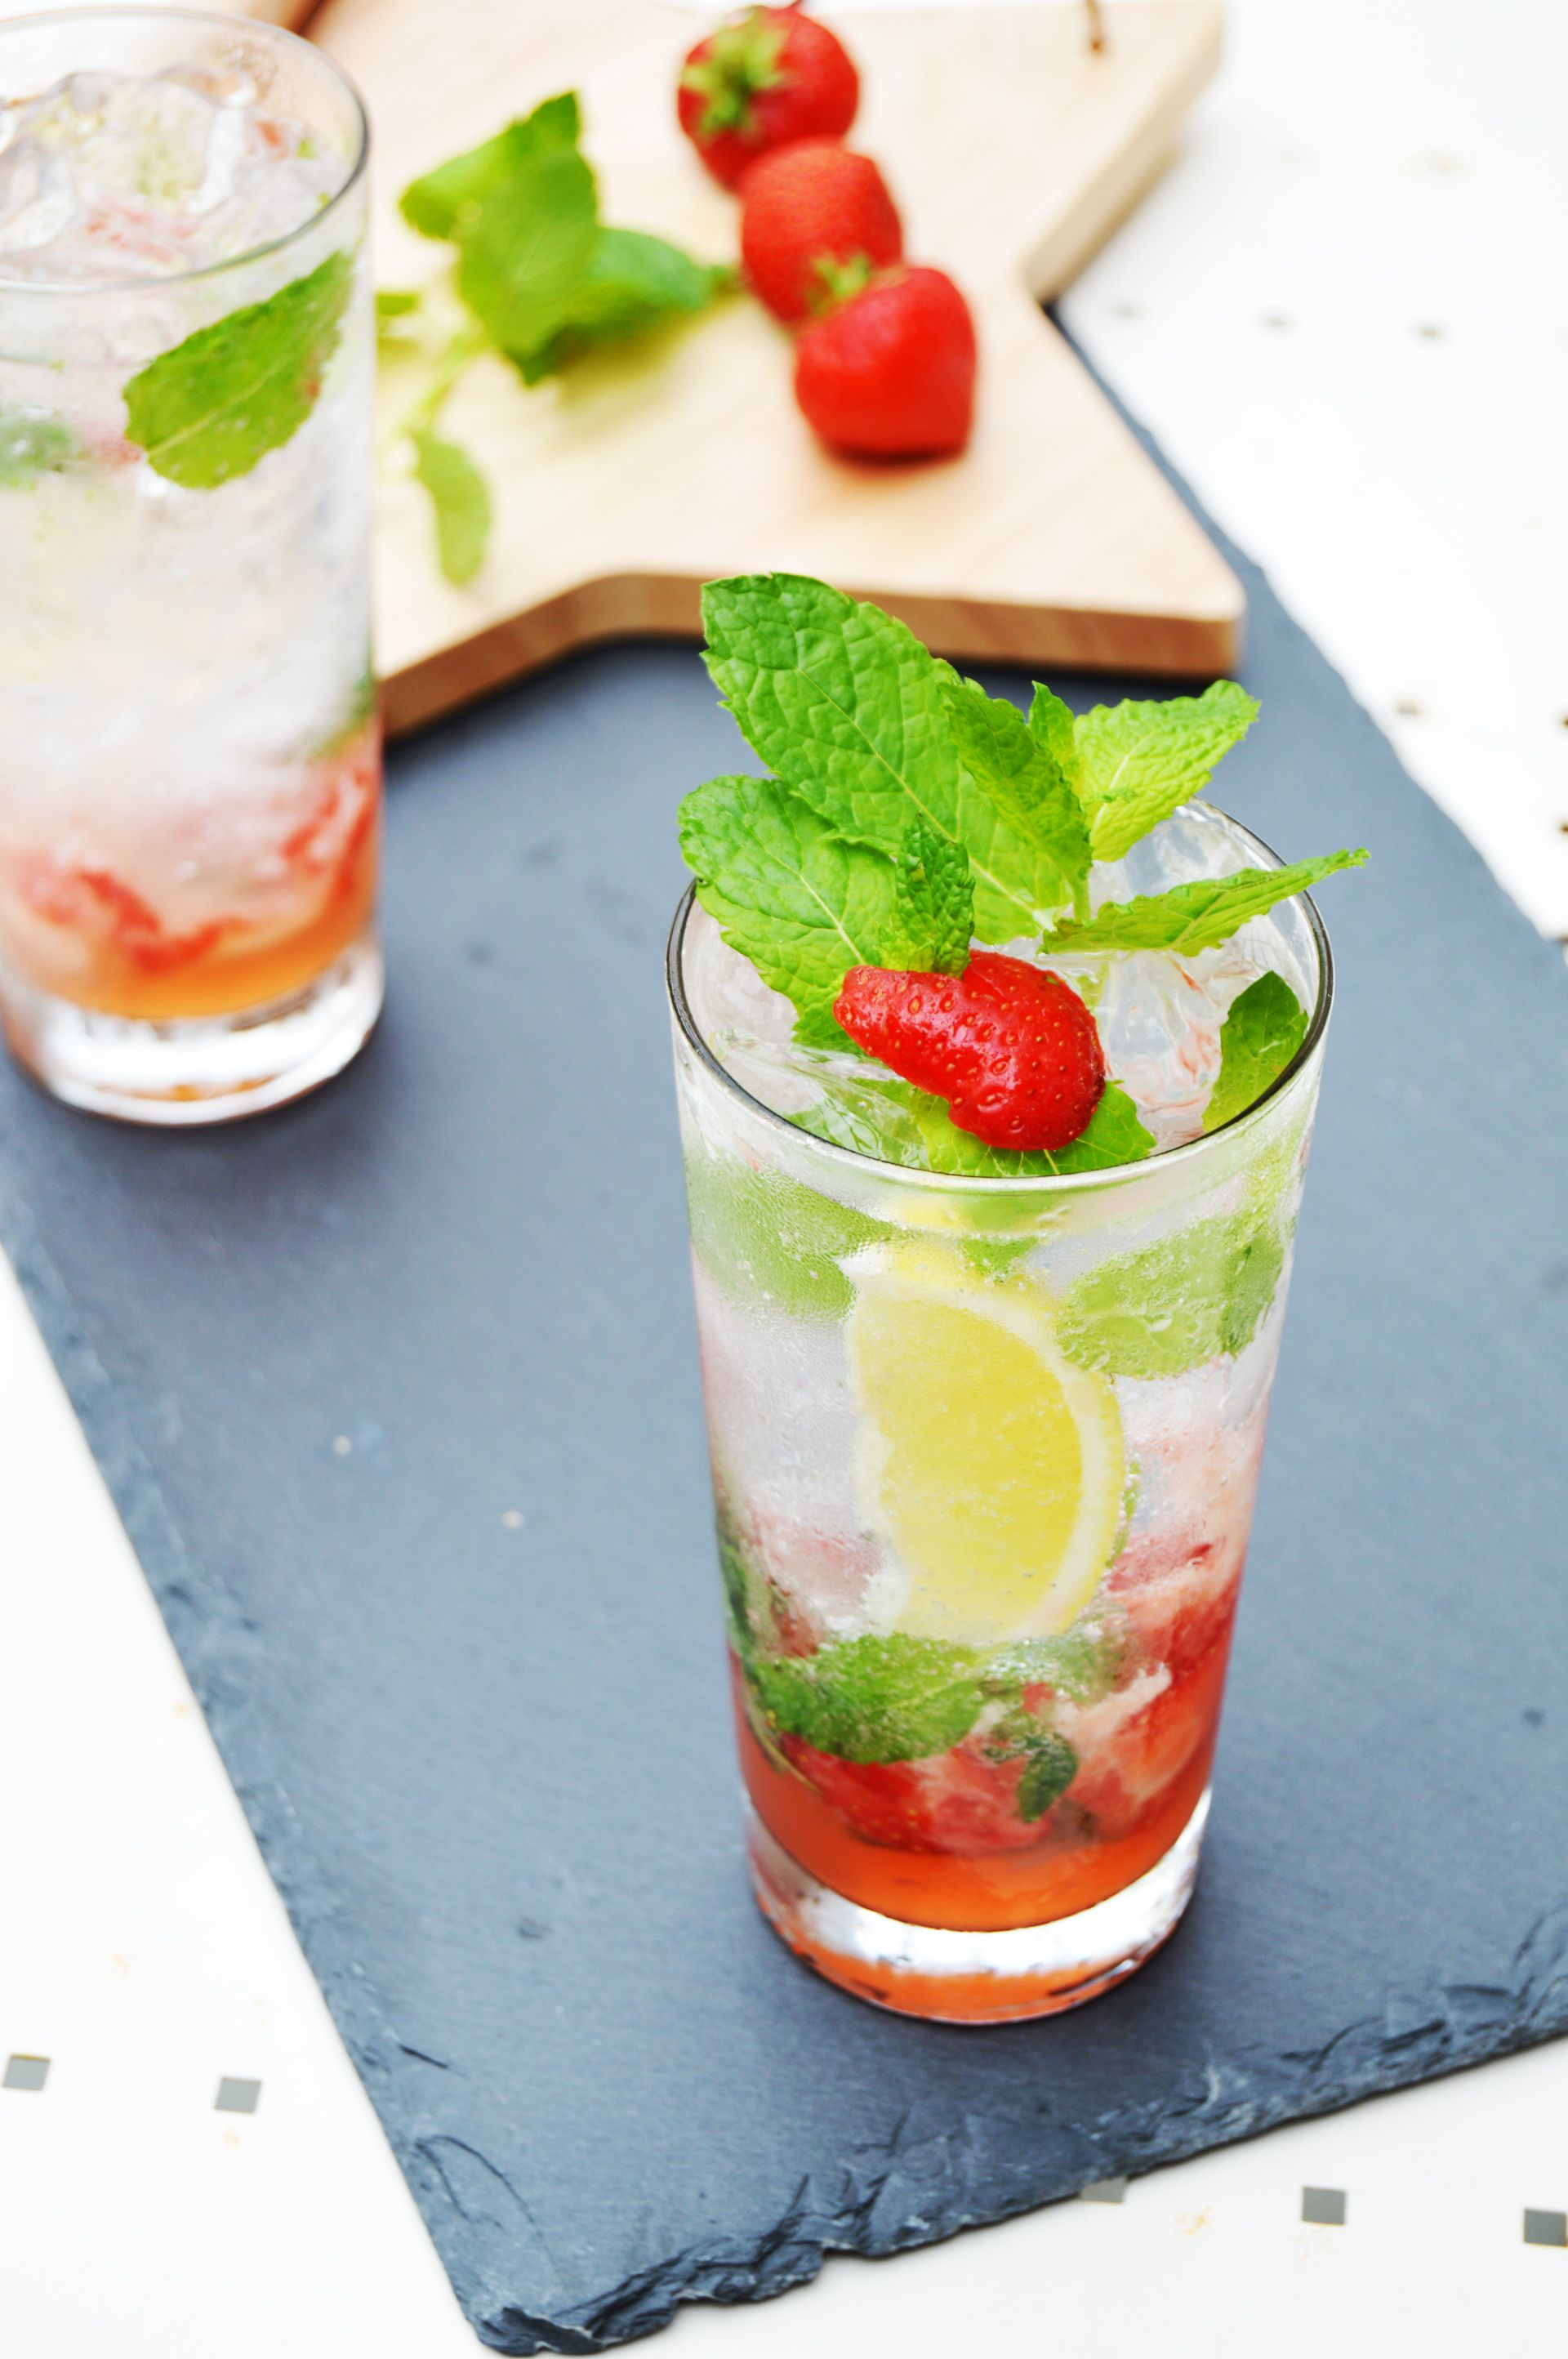 Virgin Strawberry Mojito is perfect summer cocktail. It is refreshing and it is a guild free drink.